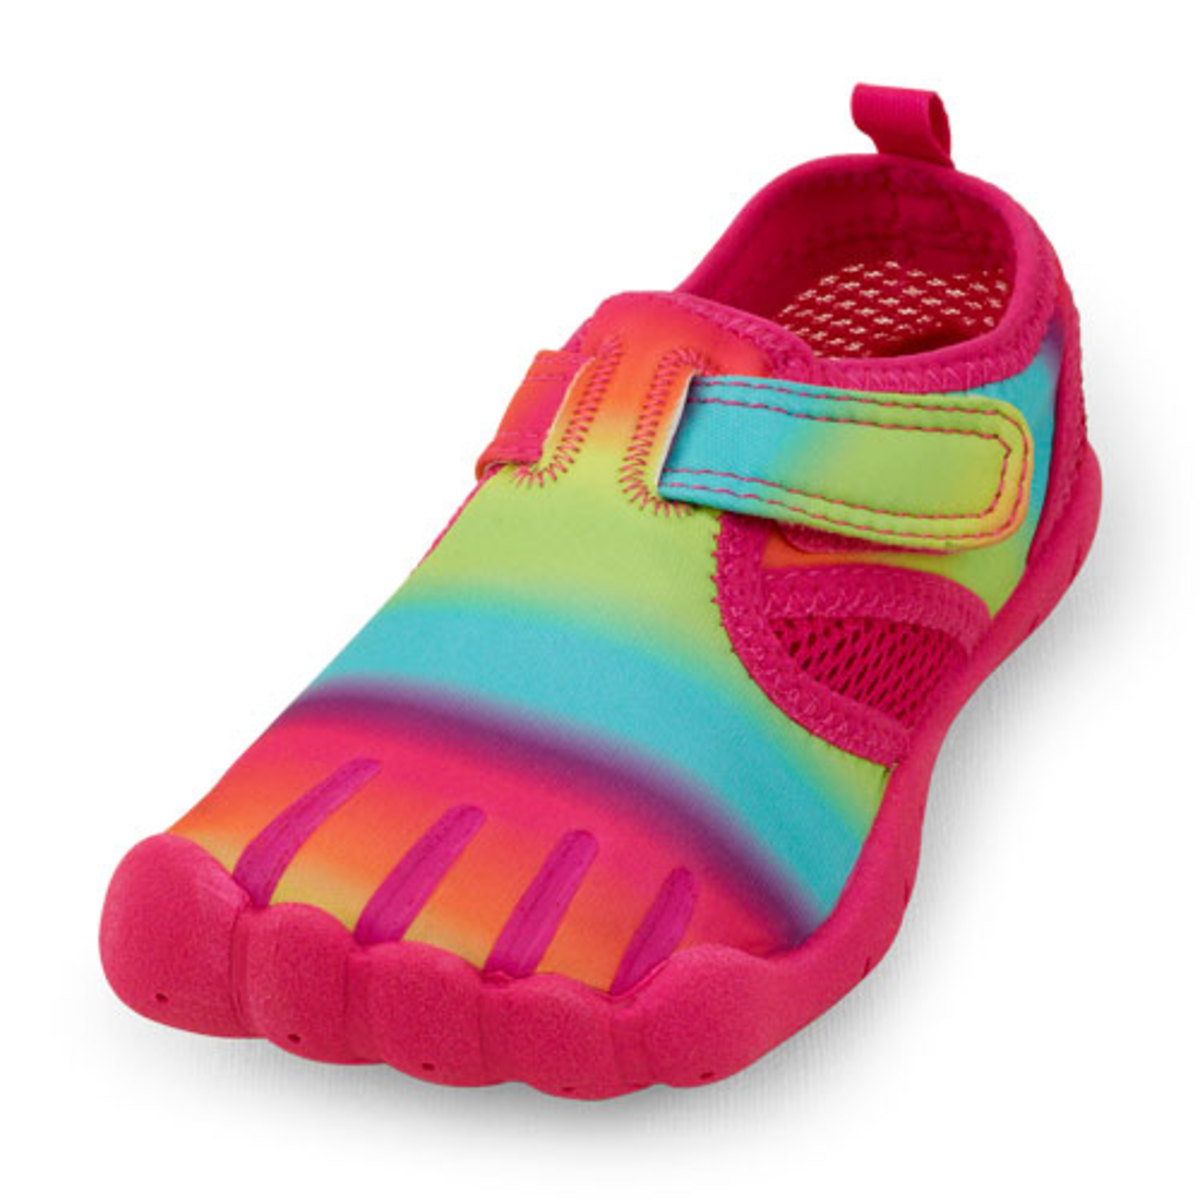 Water Shoes for Kids - MomTrendsMomTrends